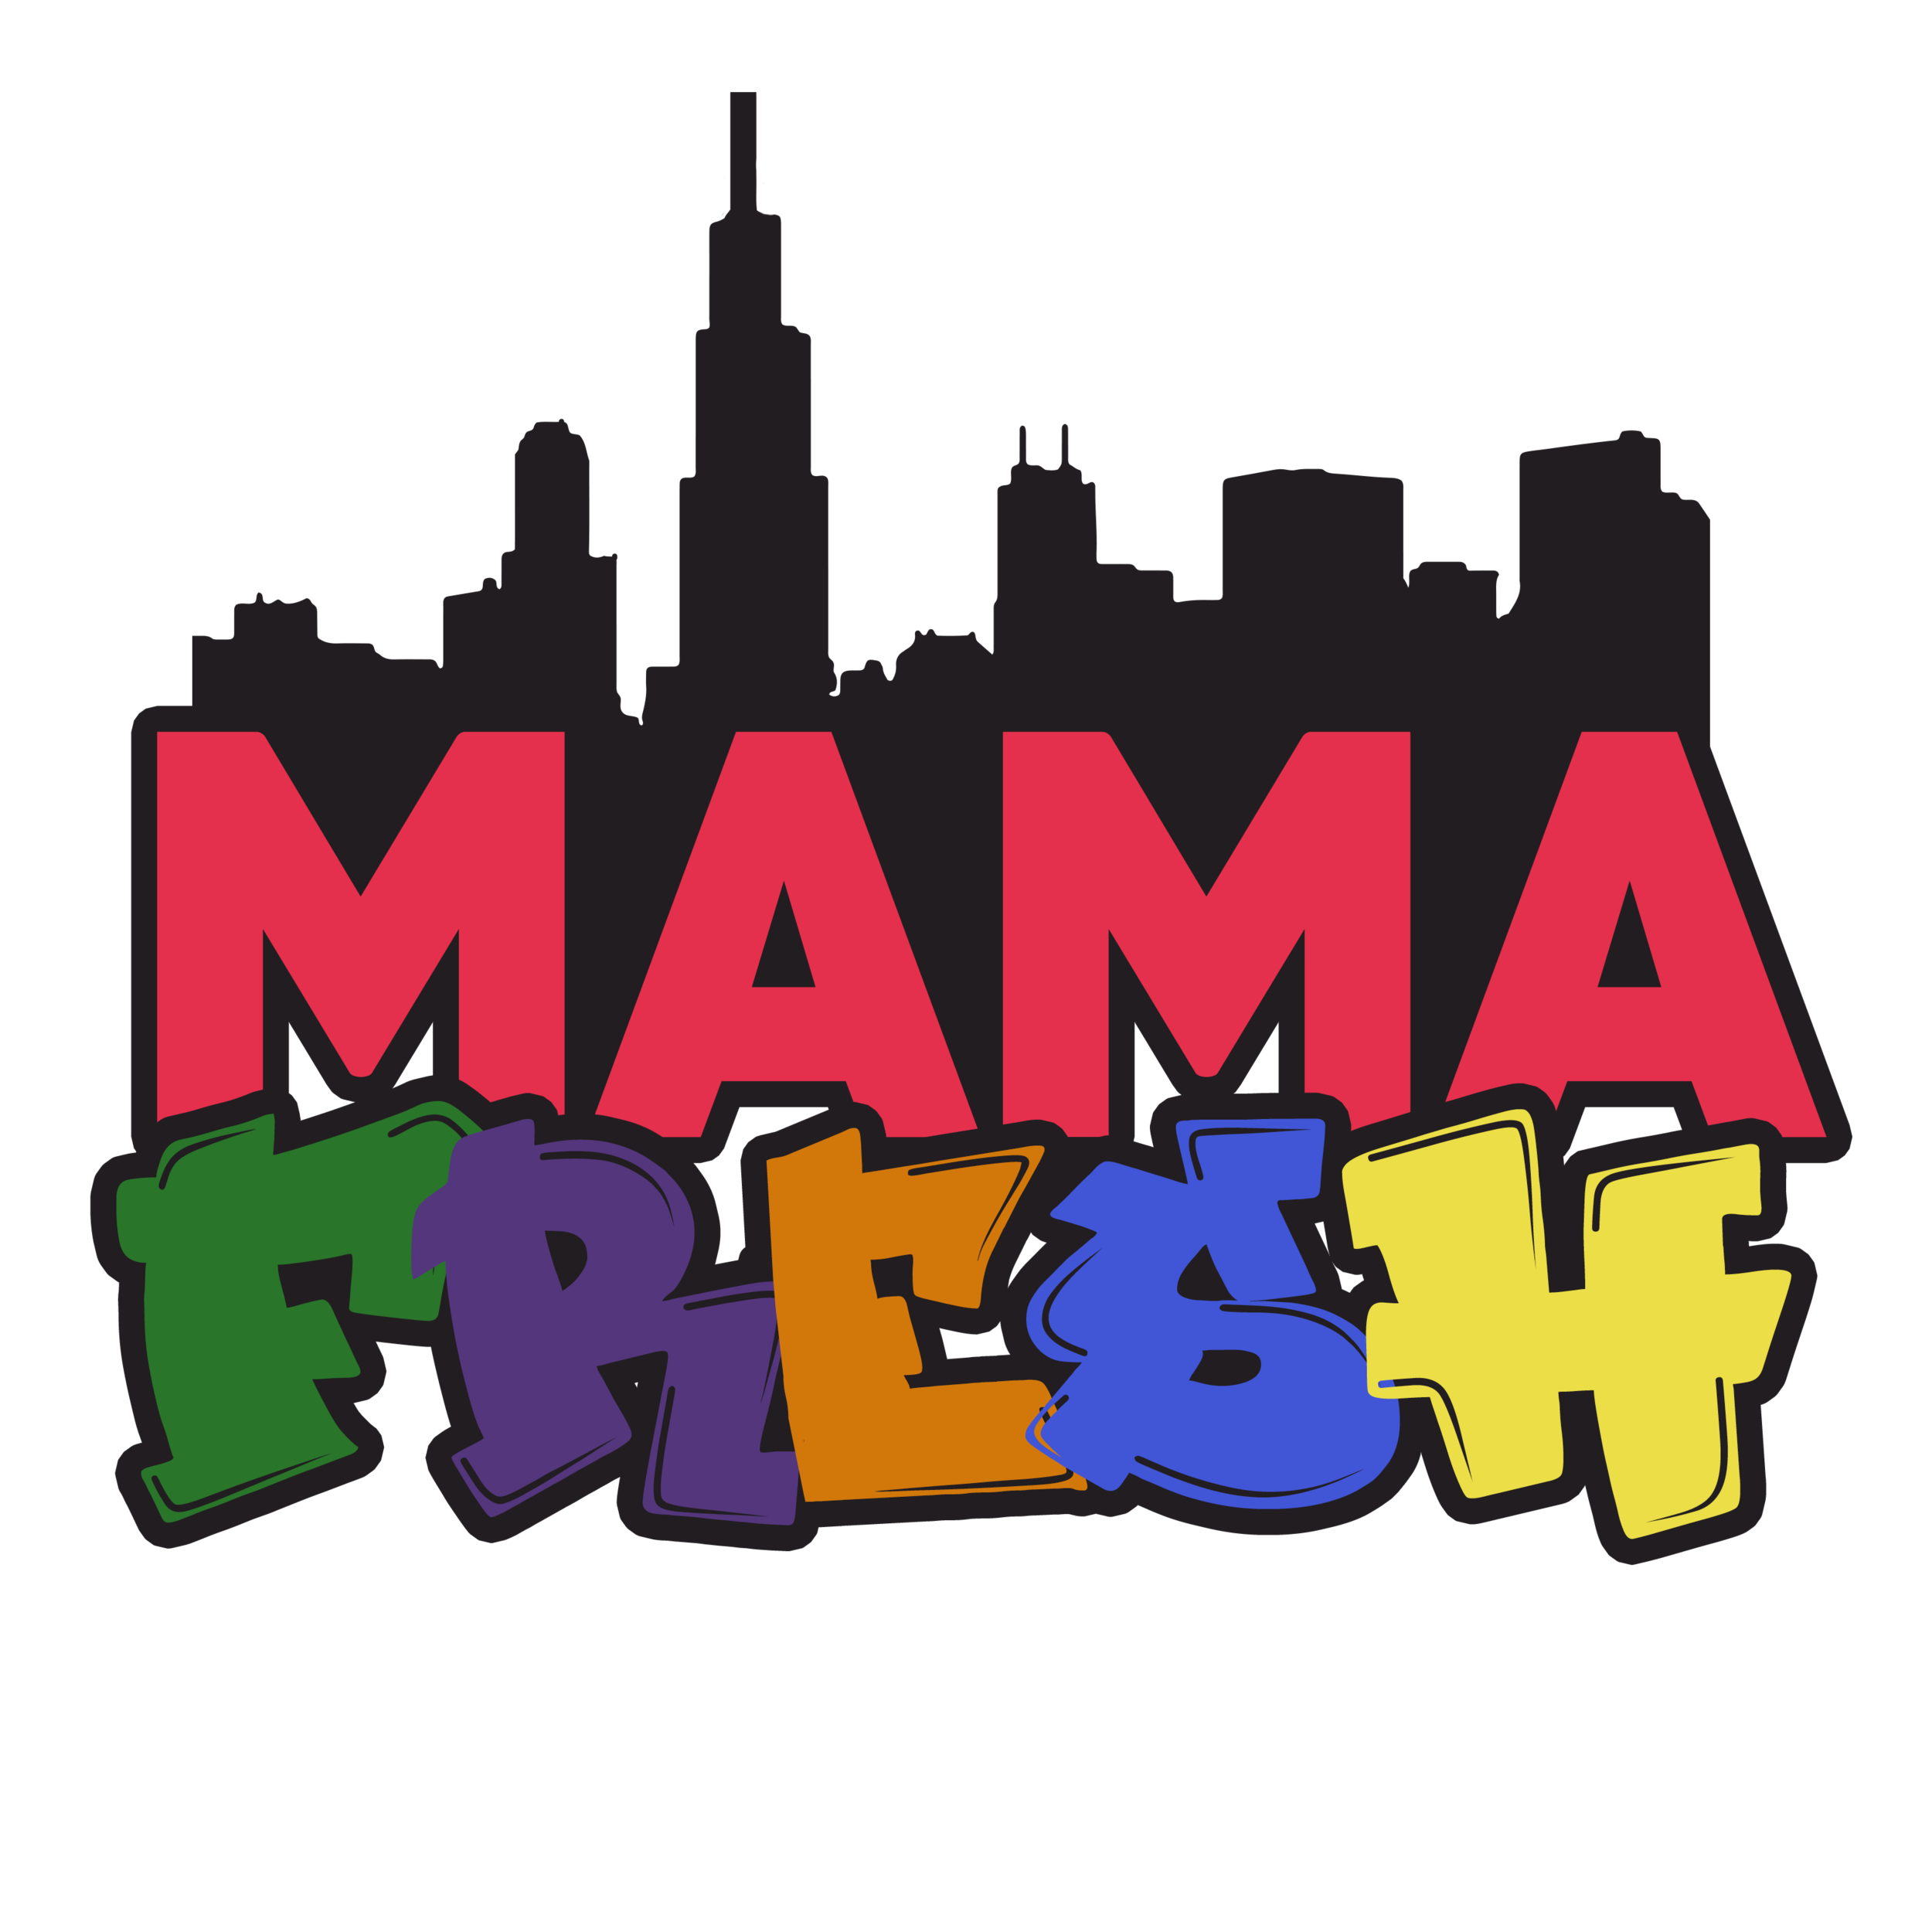 MamaFresh_TransparentBackground (1).png